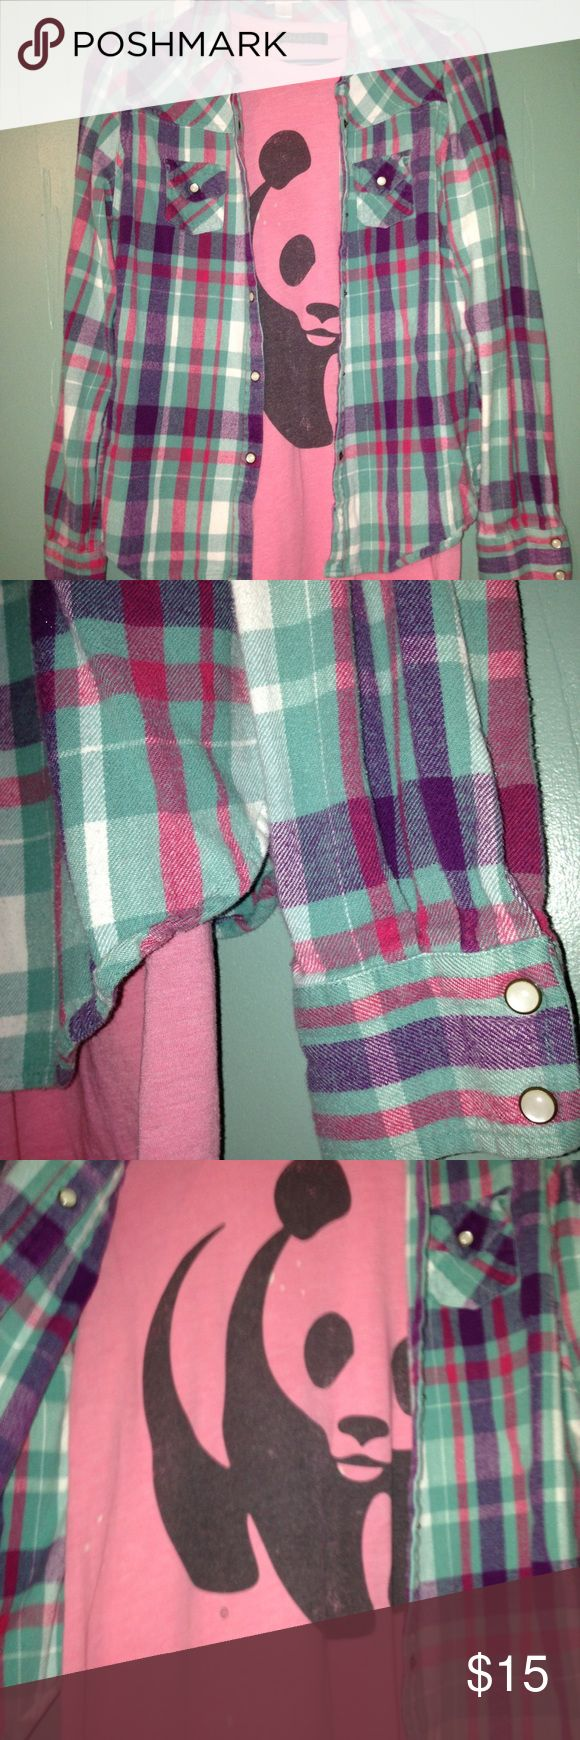 Mossimo Flannel & WWF Panda Tee Plaid flannel shirt by Mossimo (Target) in gently used condition. The fabric is a little fuzzy just from normal washing. Colors are blue, pink, white and purple. Pearled snap buttons on wrists and breast pockets. Size large but runs small. Pink/black World Wildlife Federation pandabear tee is size XL but runs small as well! Has a couple bleached spots but they just add to the retro look! Bundle discount 2-20% 3-25% 4-30%. Just let me know before buying 2 or 4…